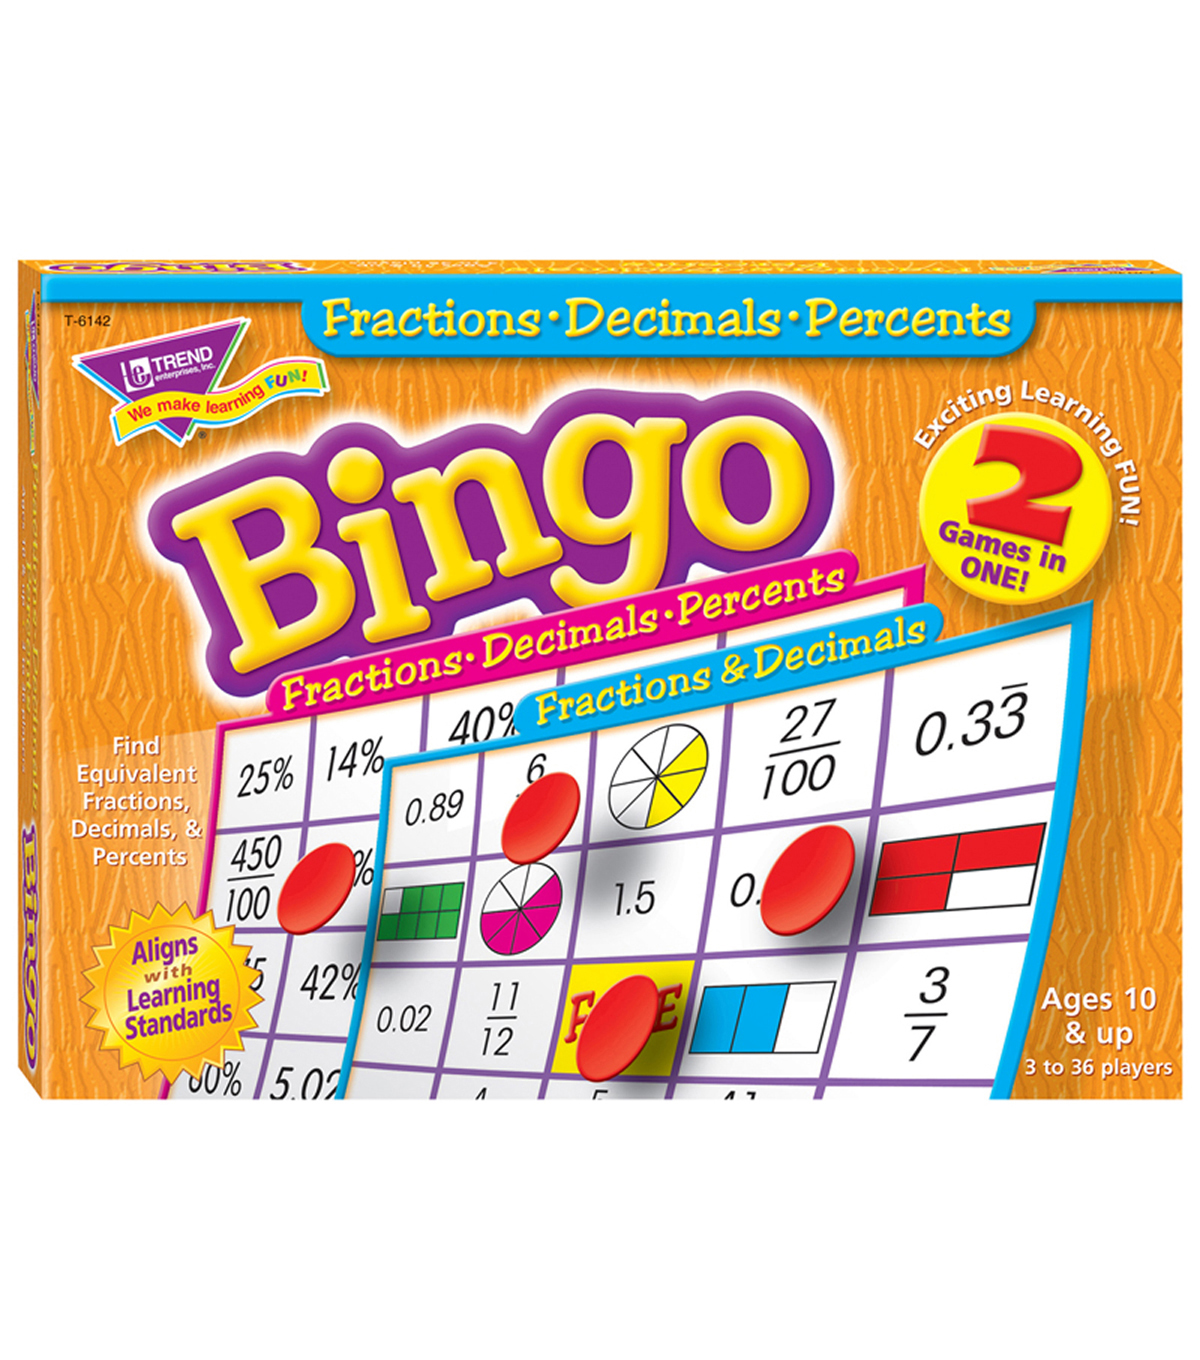 TREND enterprises, Inc. Fractions, Decimals, & Percents Bingo Game